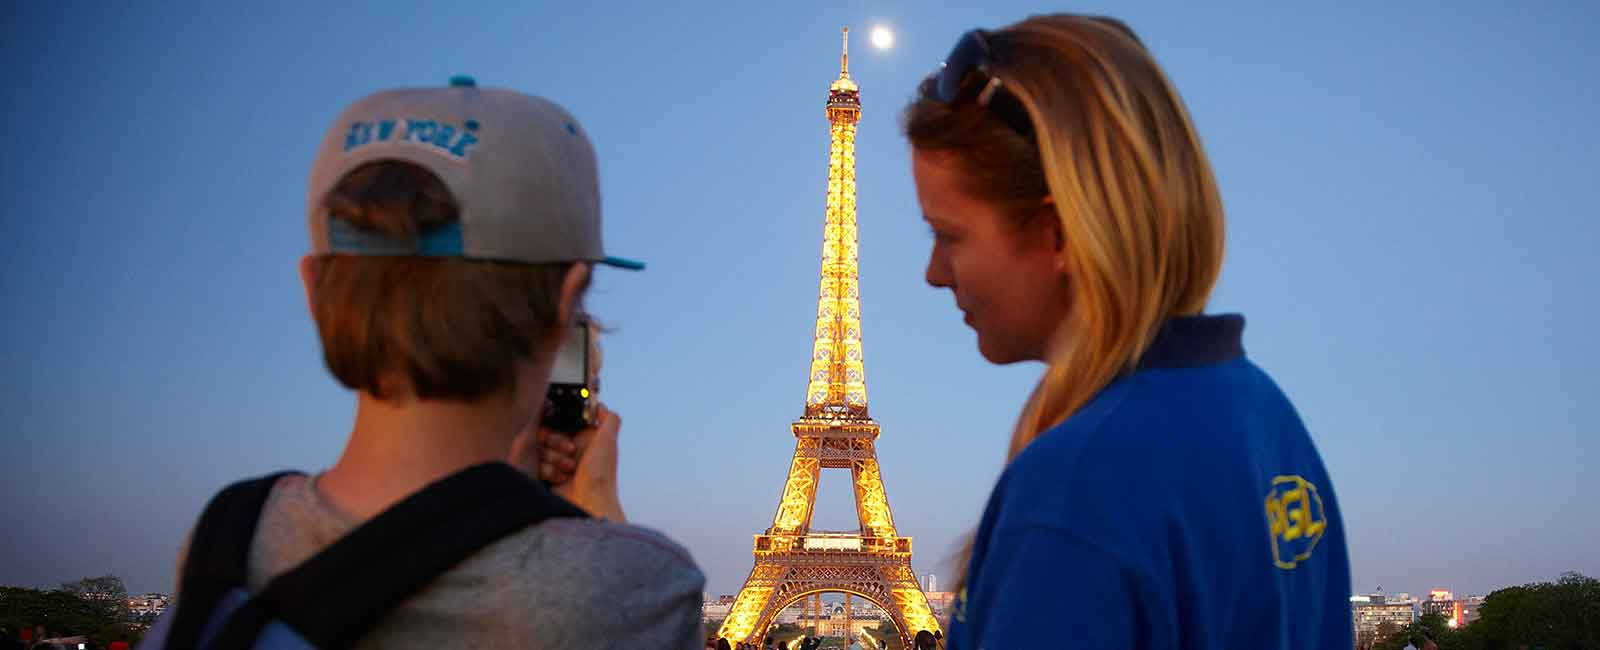 PGL Tour Leader with boy in front of Eiffel tower at night